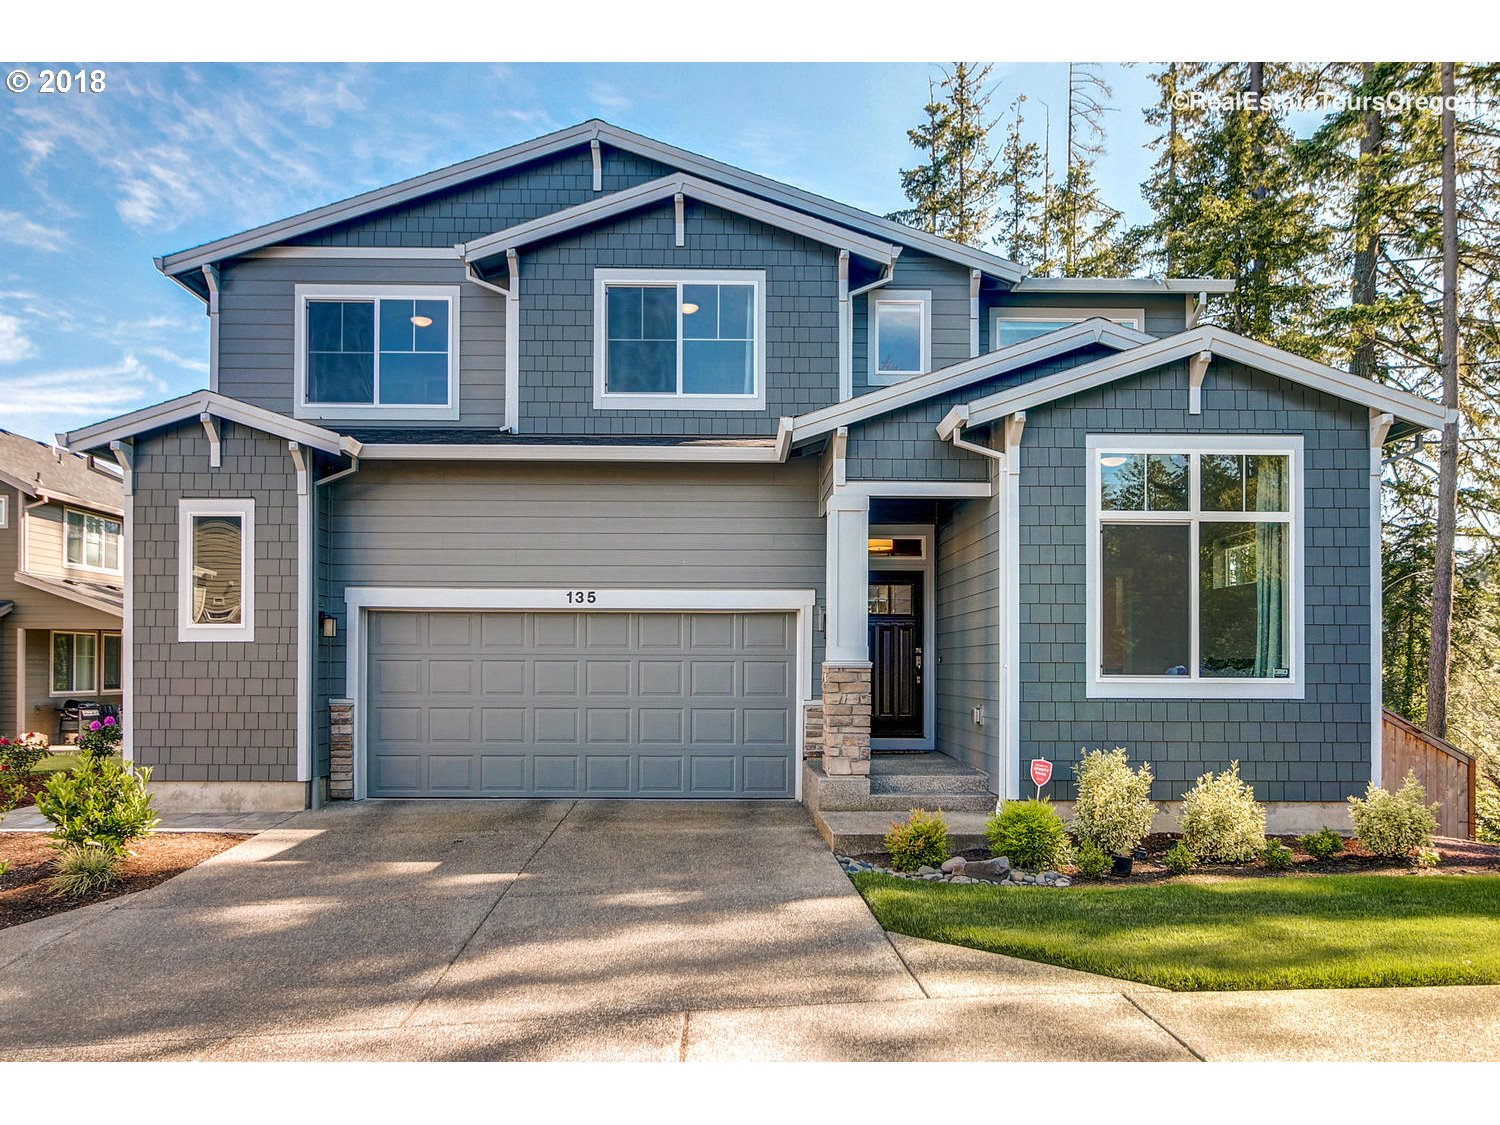 135 NE 58TH AVE, Hillsboro, OR 97124